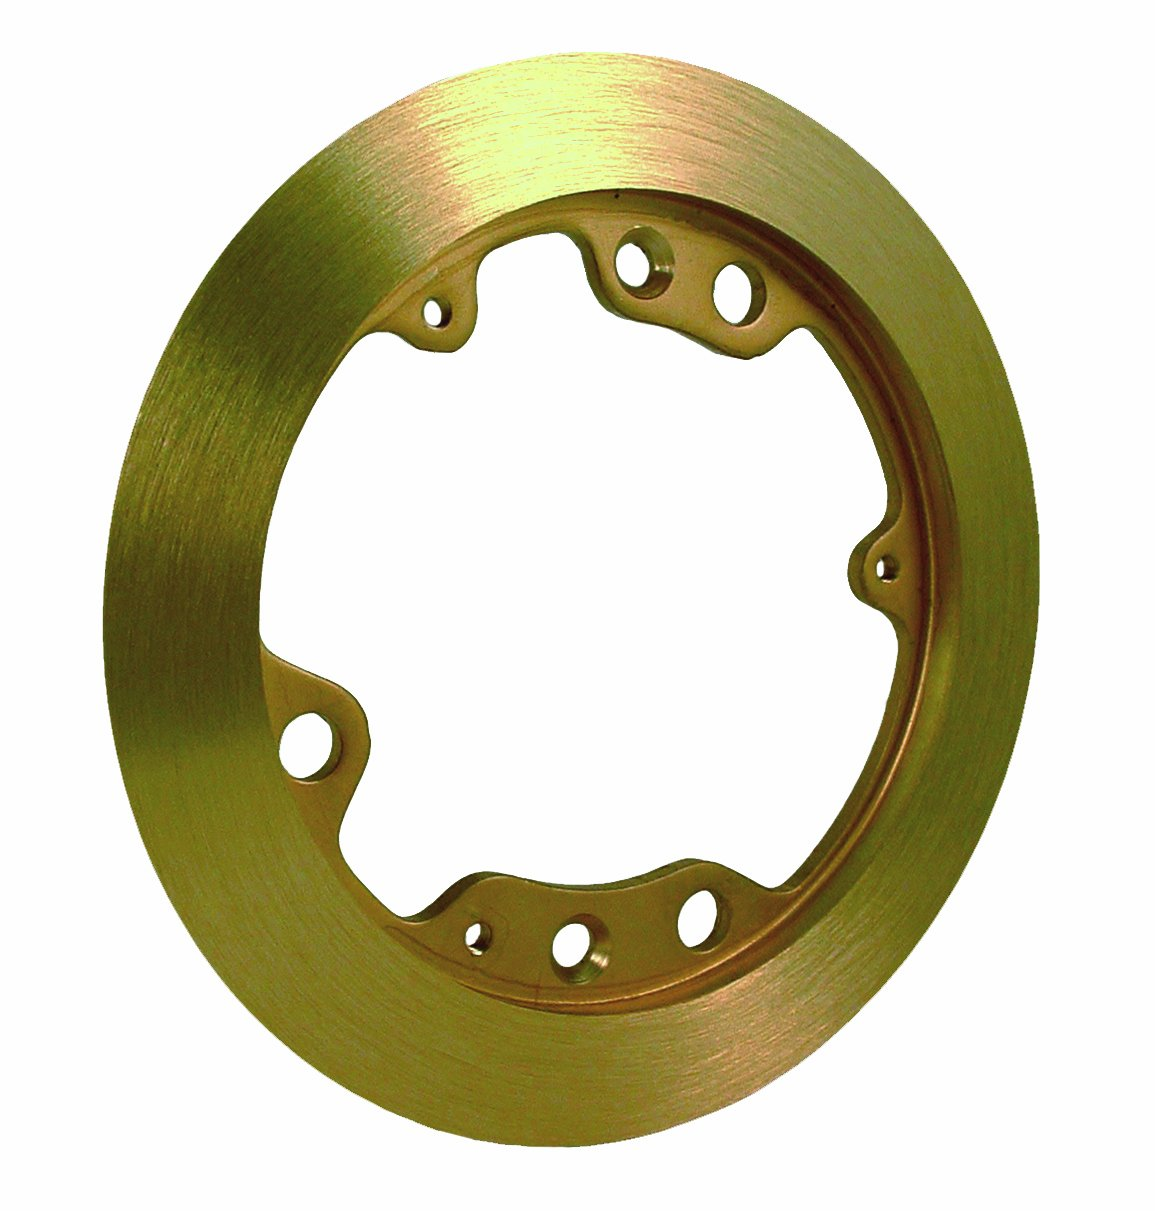 Hubbell-Raco 6230 5-1/4-Inch Round Brass Carpet Flange